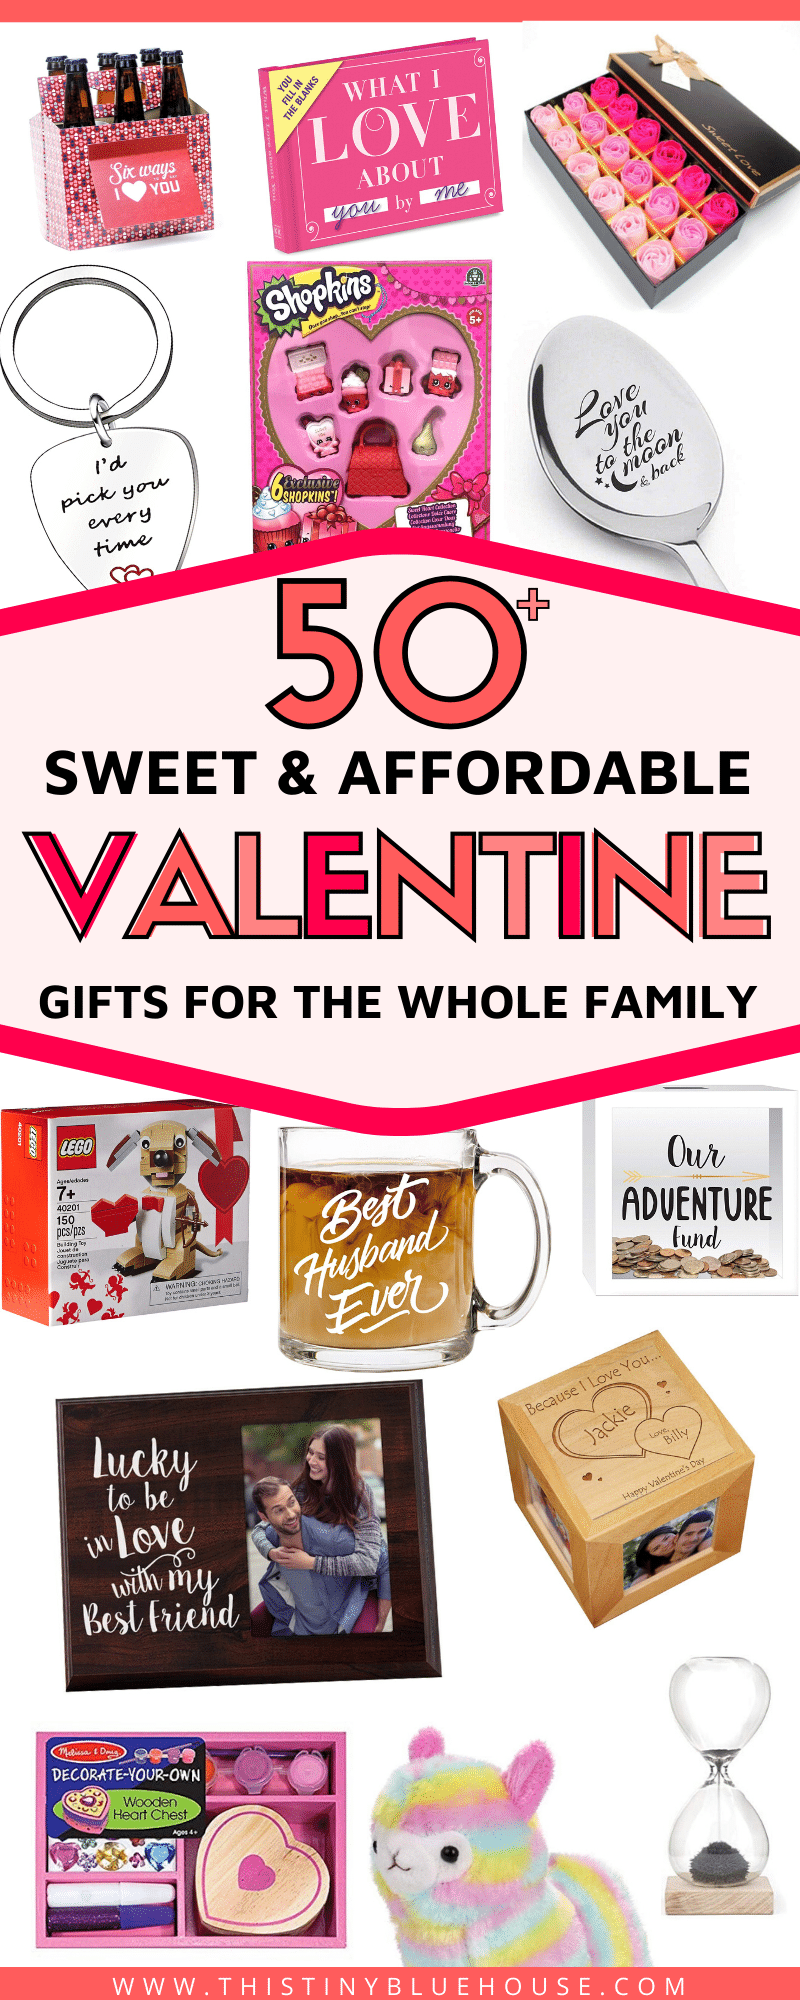 50+ Inexpensive Valentine's Day Gifts for everyone in the family #gifts #giftguide #valentinesday #vday #love #giftsforhim #giftsforher #giftsforkids #frugalliving #cheapgifts #cheapgiftguide